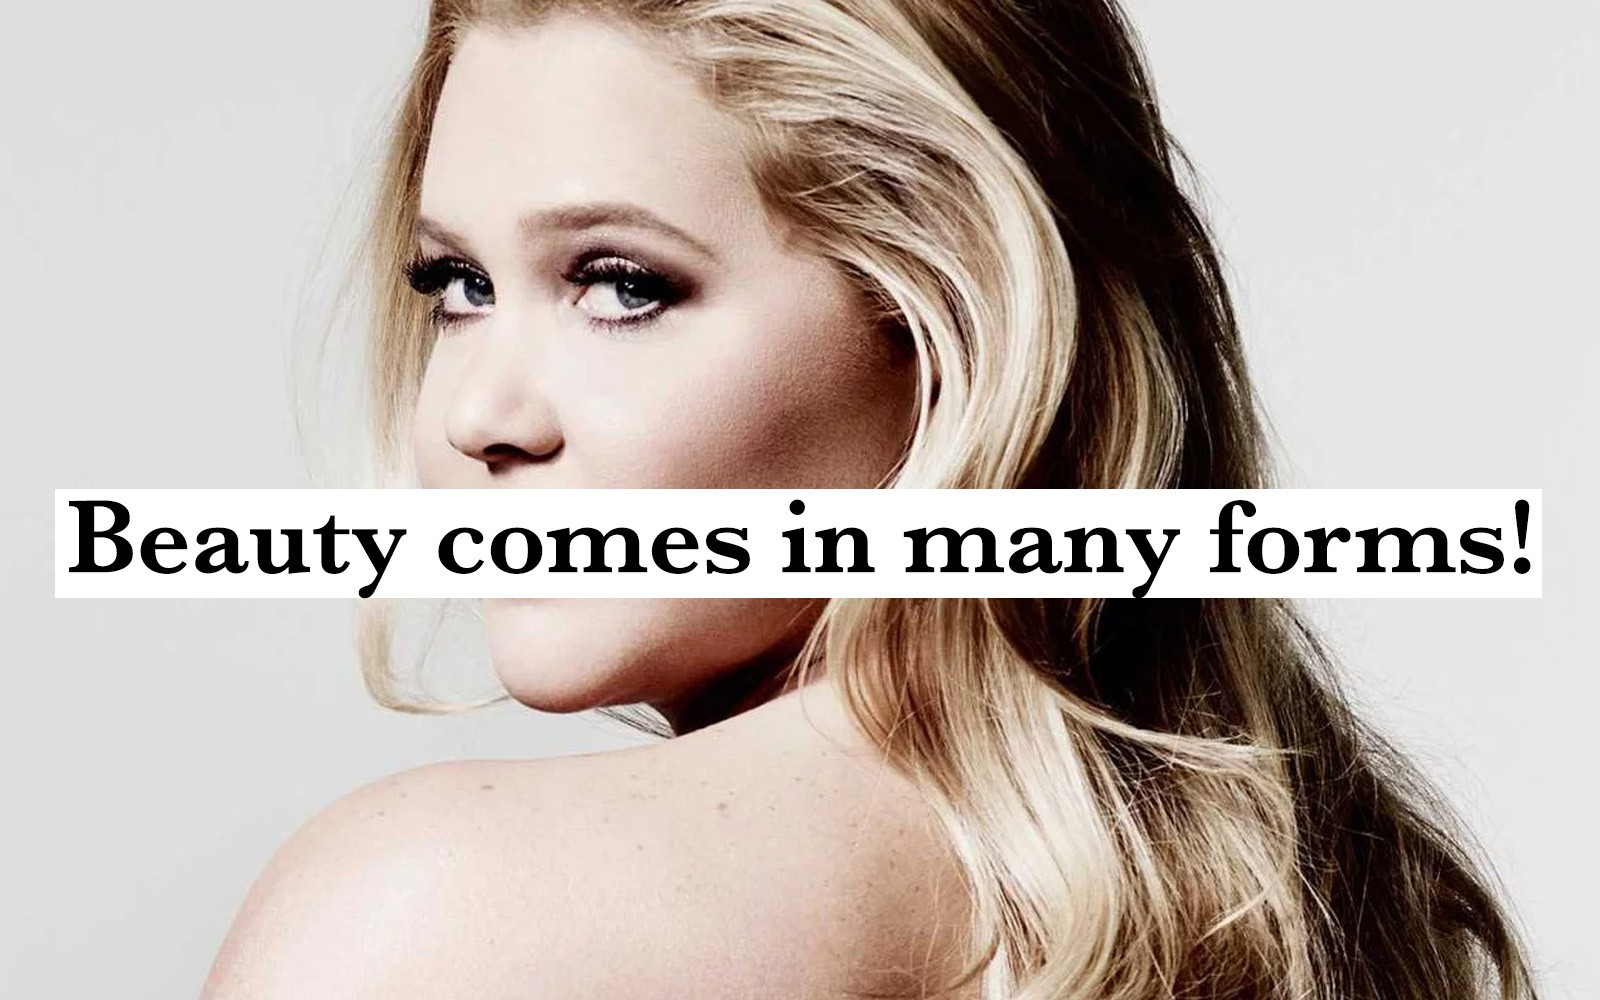 18 Amy Schumer Quotes That Prove She's Much More Than Just A Funny Girl With The Lower Back Tattoo